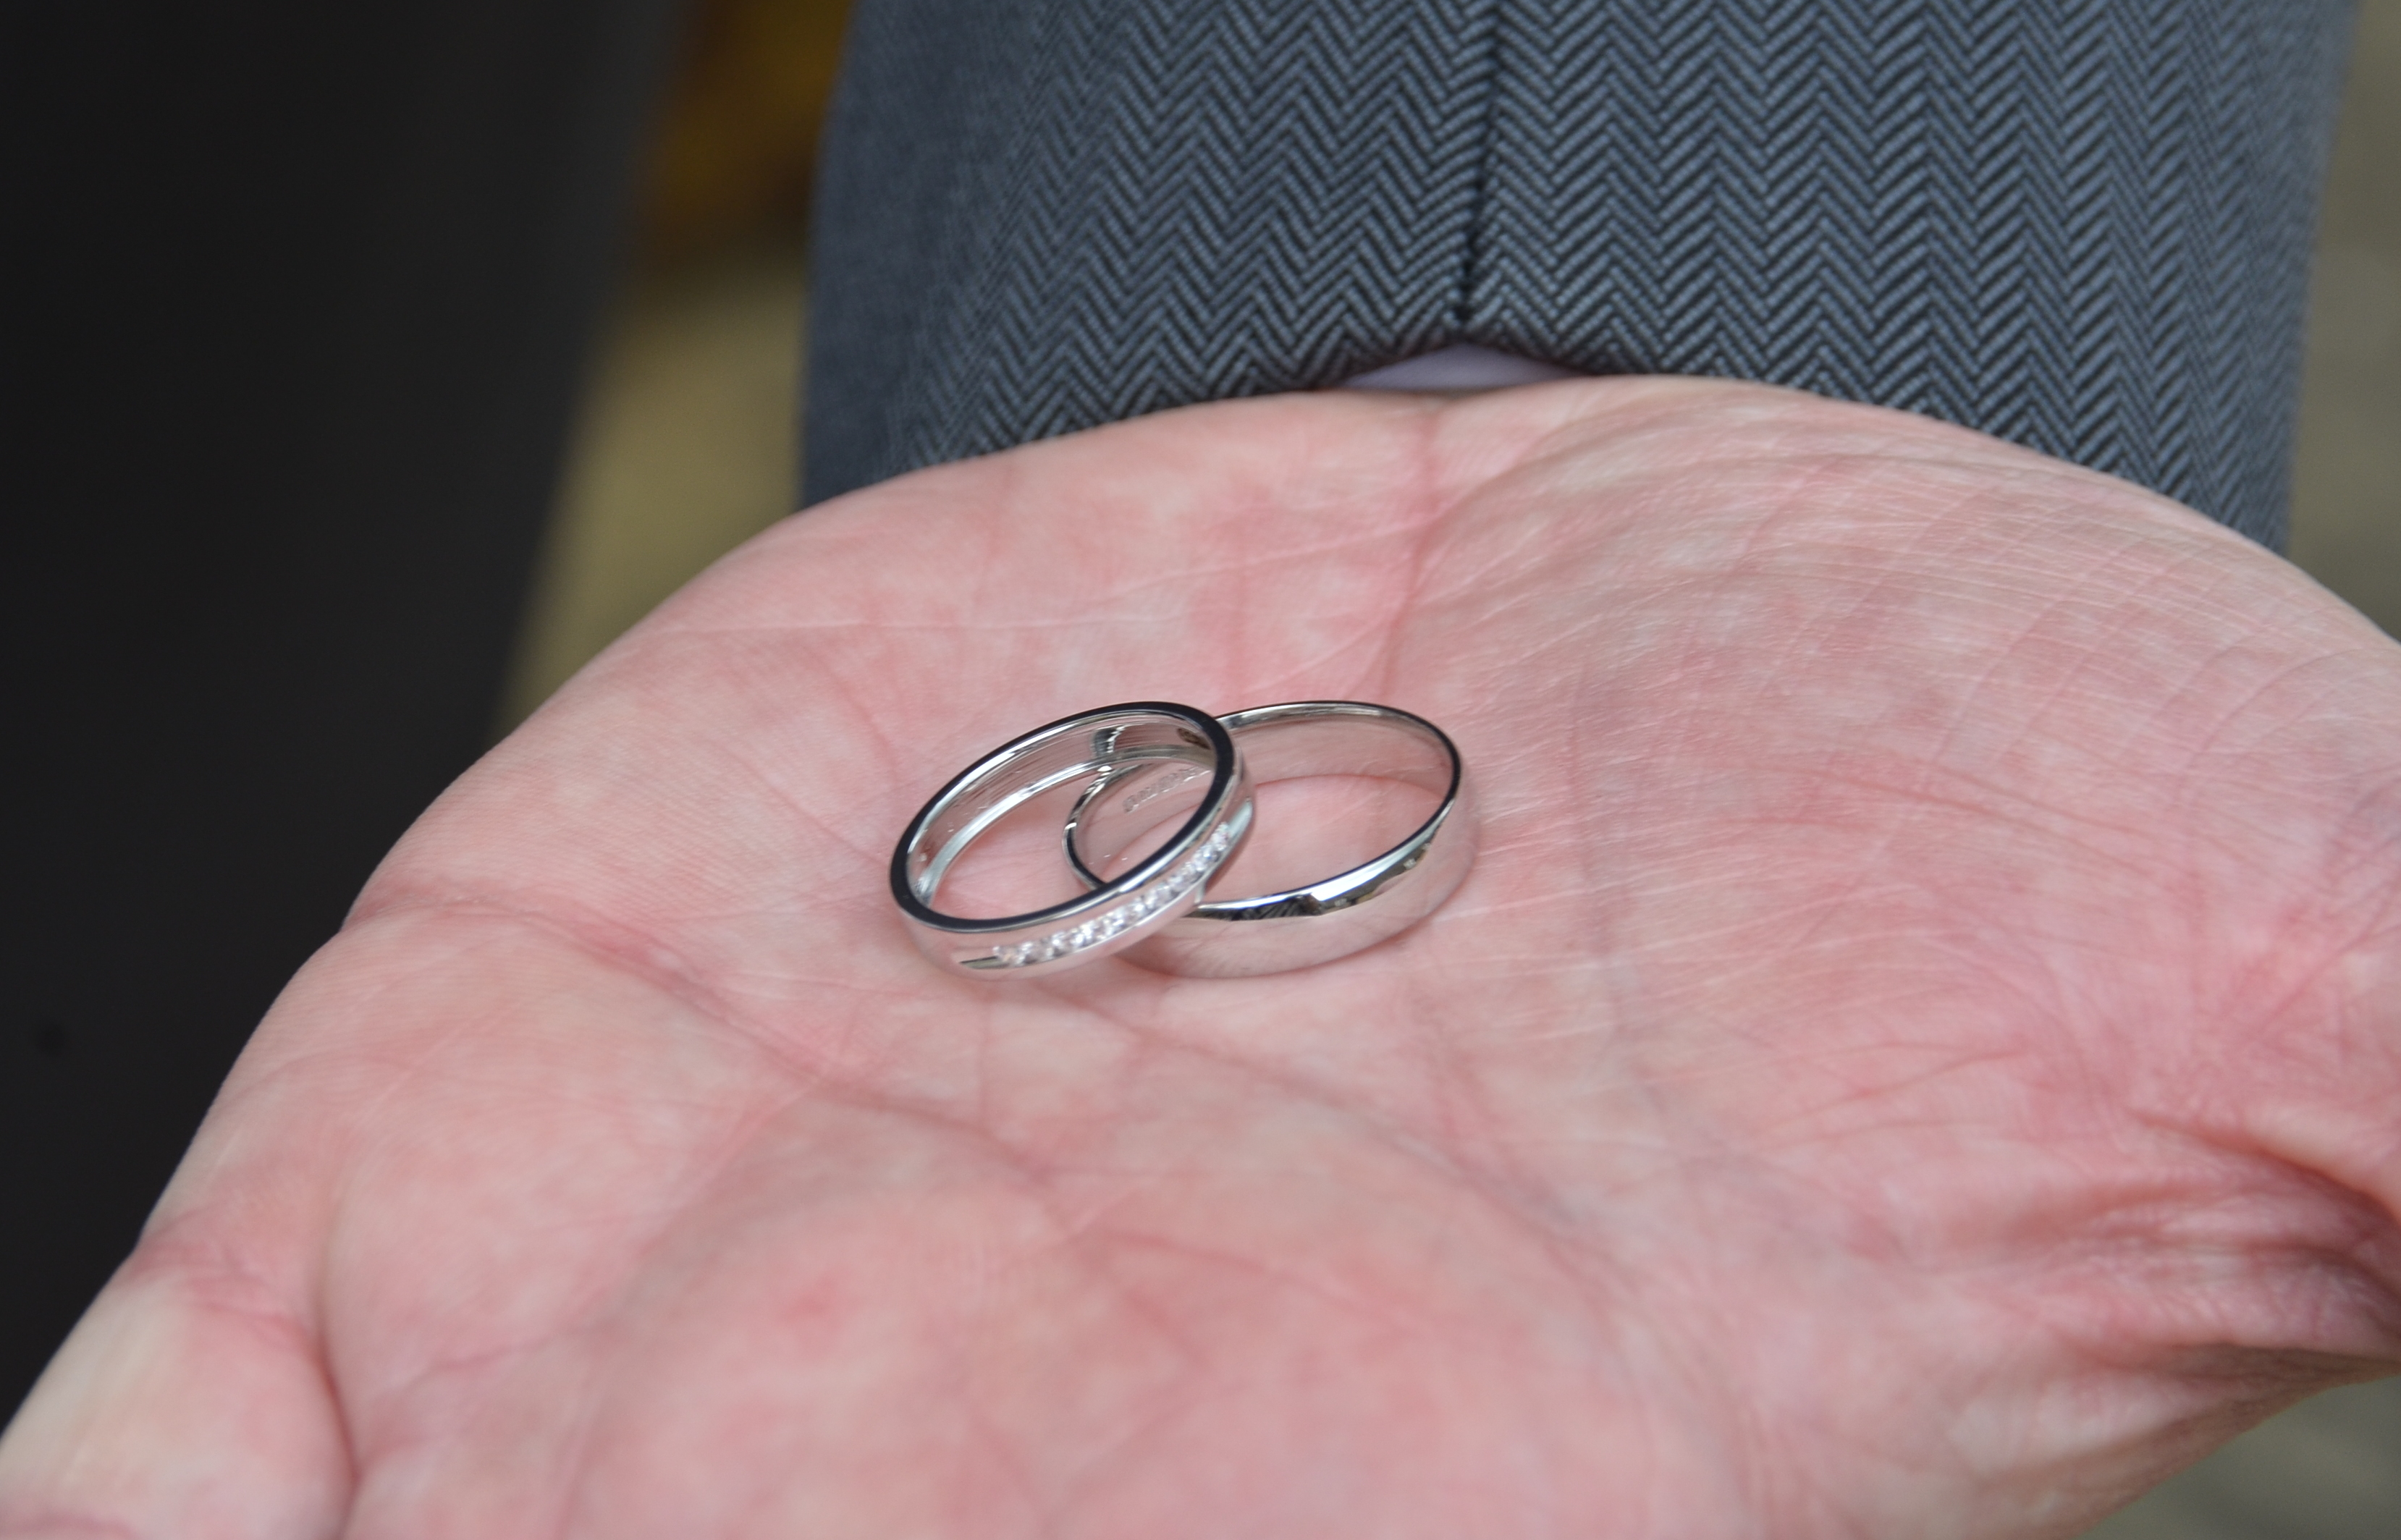 Free photo: Wedding rings - Weddingrings, Wedding, Rings - Free ...